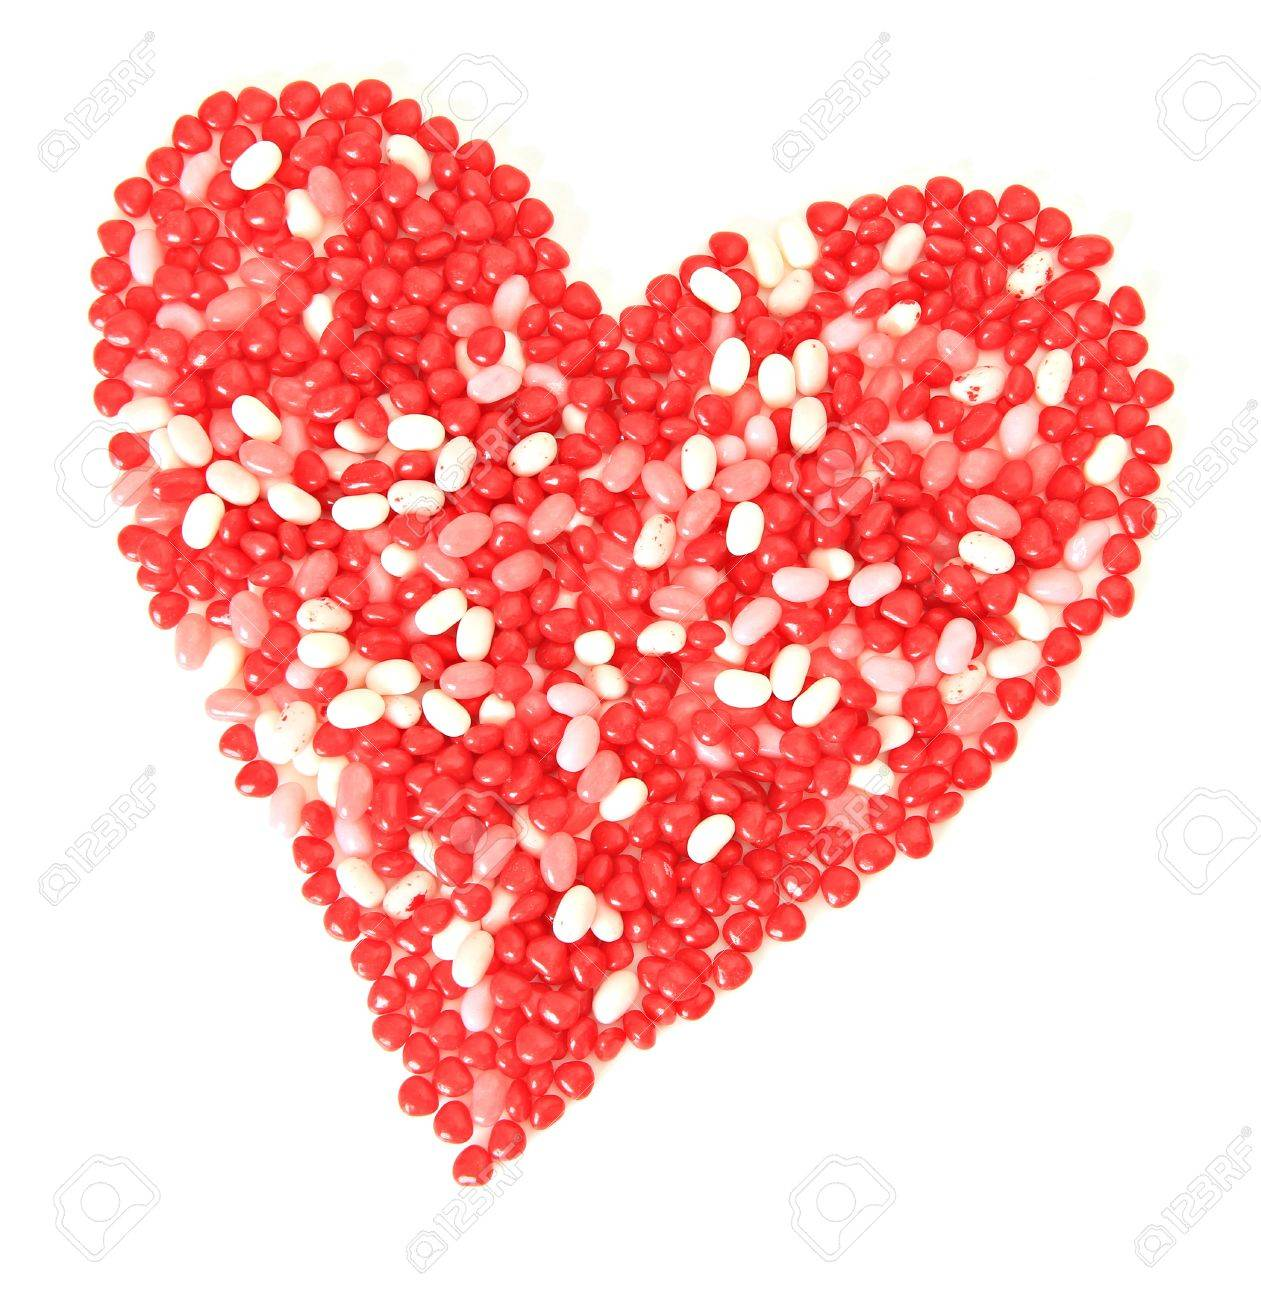 Isolated Valentine heart made of candy. Stock Photo - 11872757